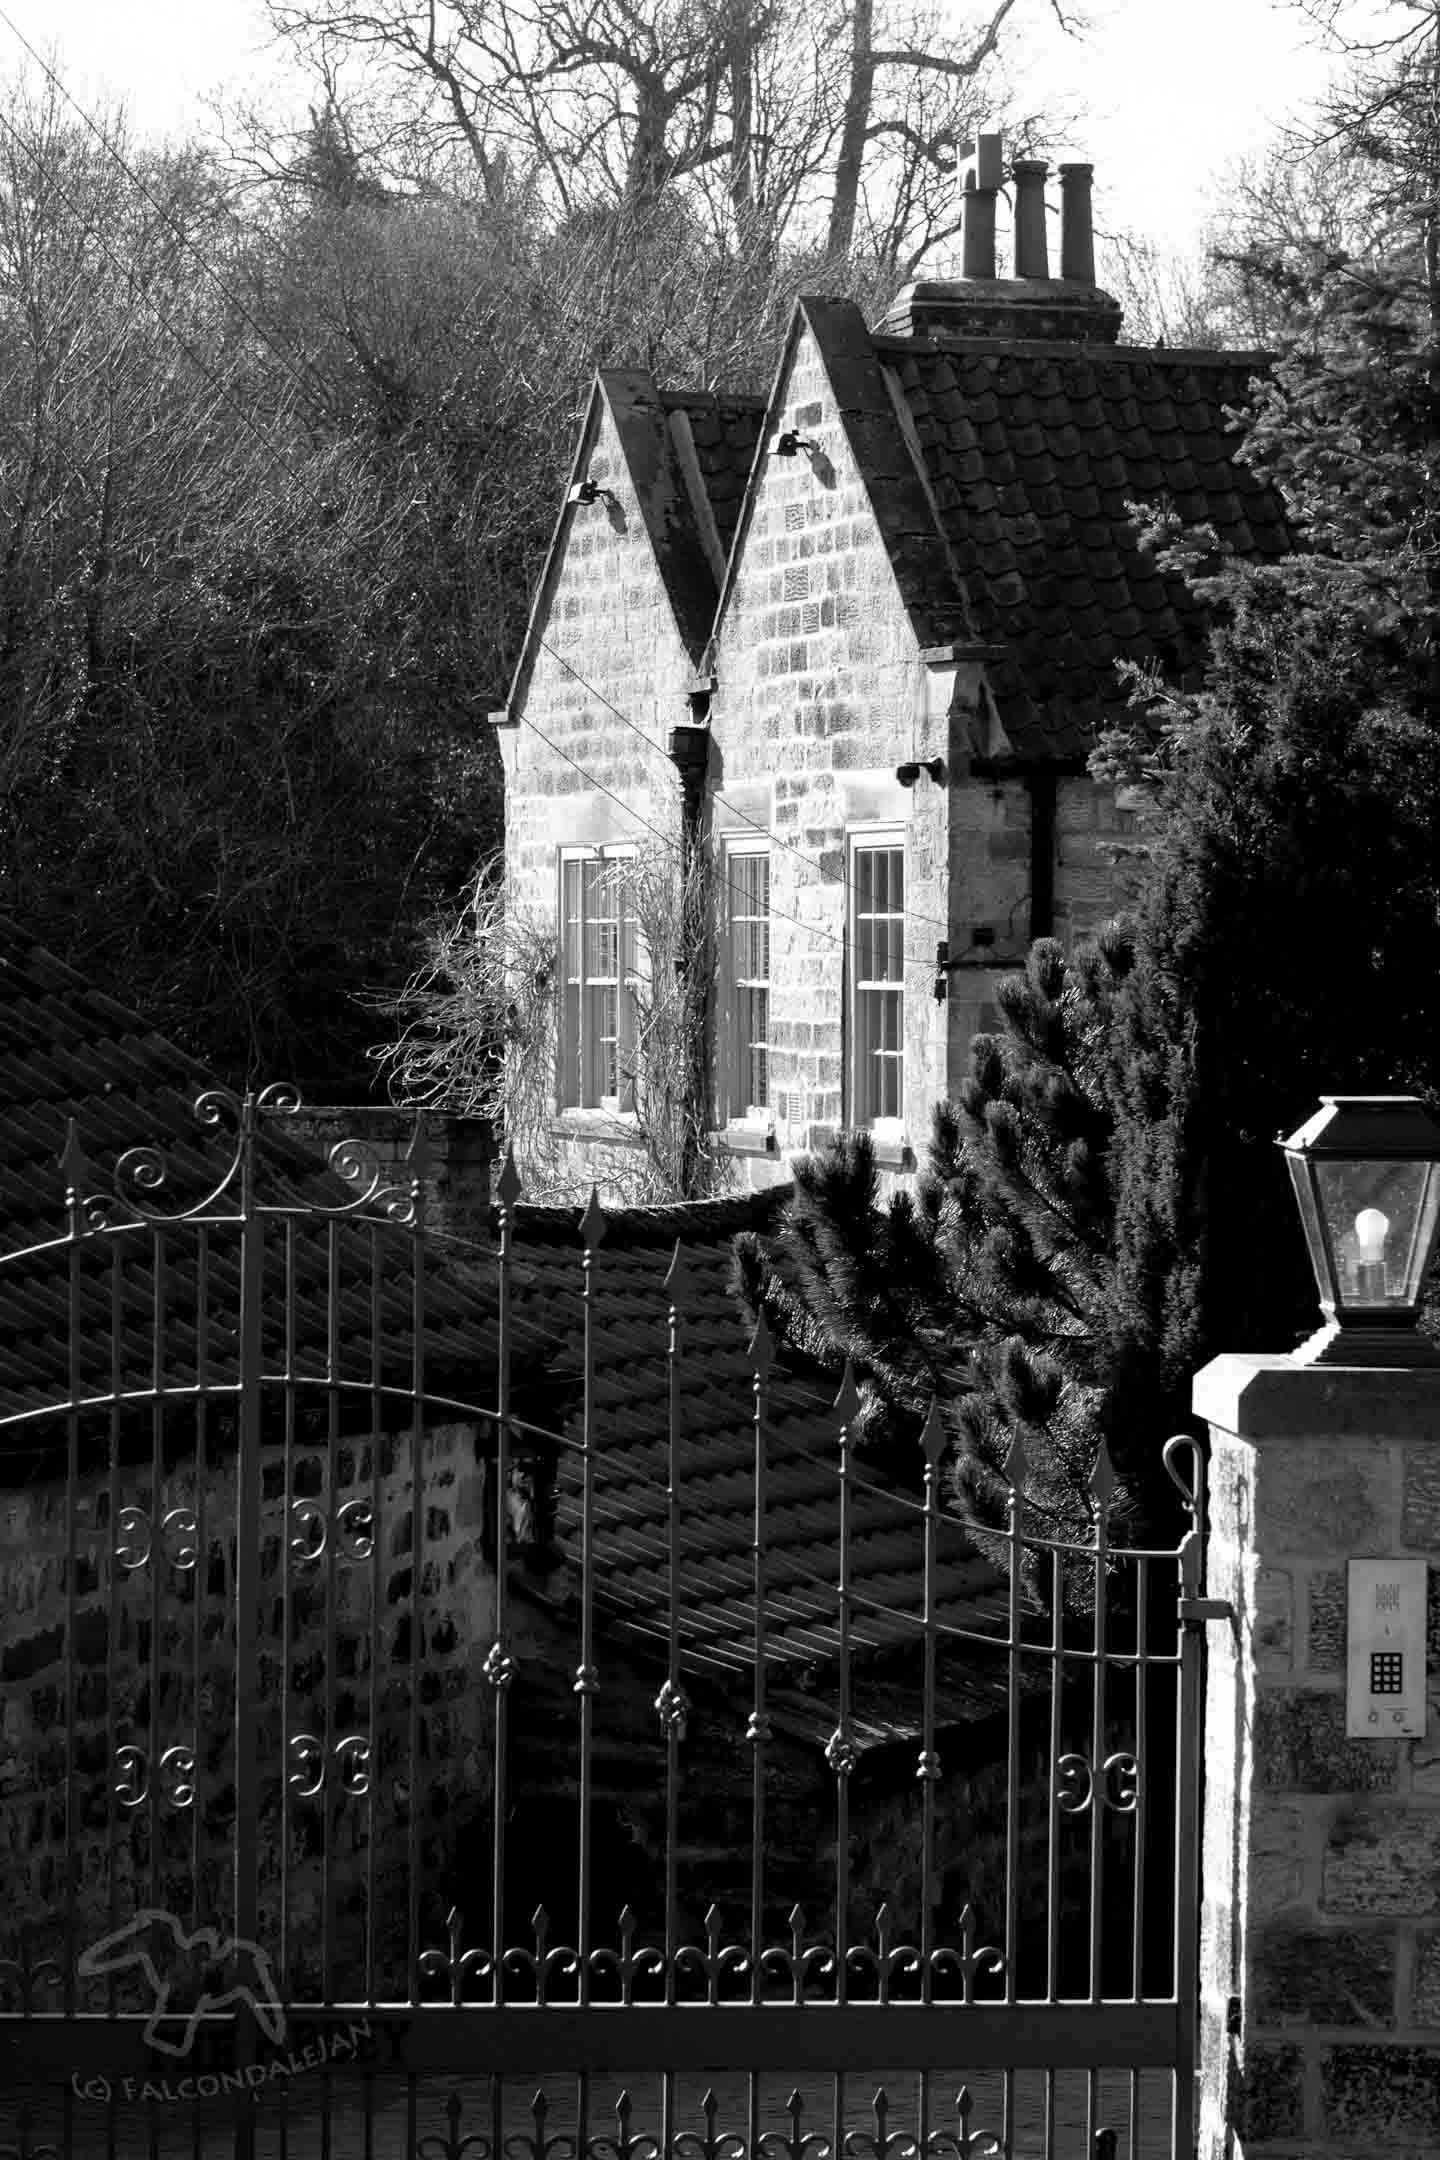 Gabled stone house behind iron gate monochrome Reasons to shoot black and White part 2: Flatten Perspective on Falcondale Life blog. In this short series I look at some reasons I've chosen to turn a photo monochrome.